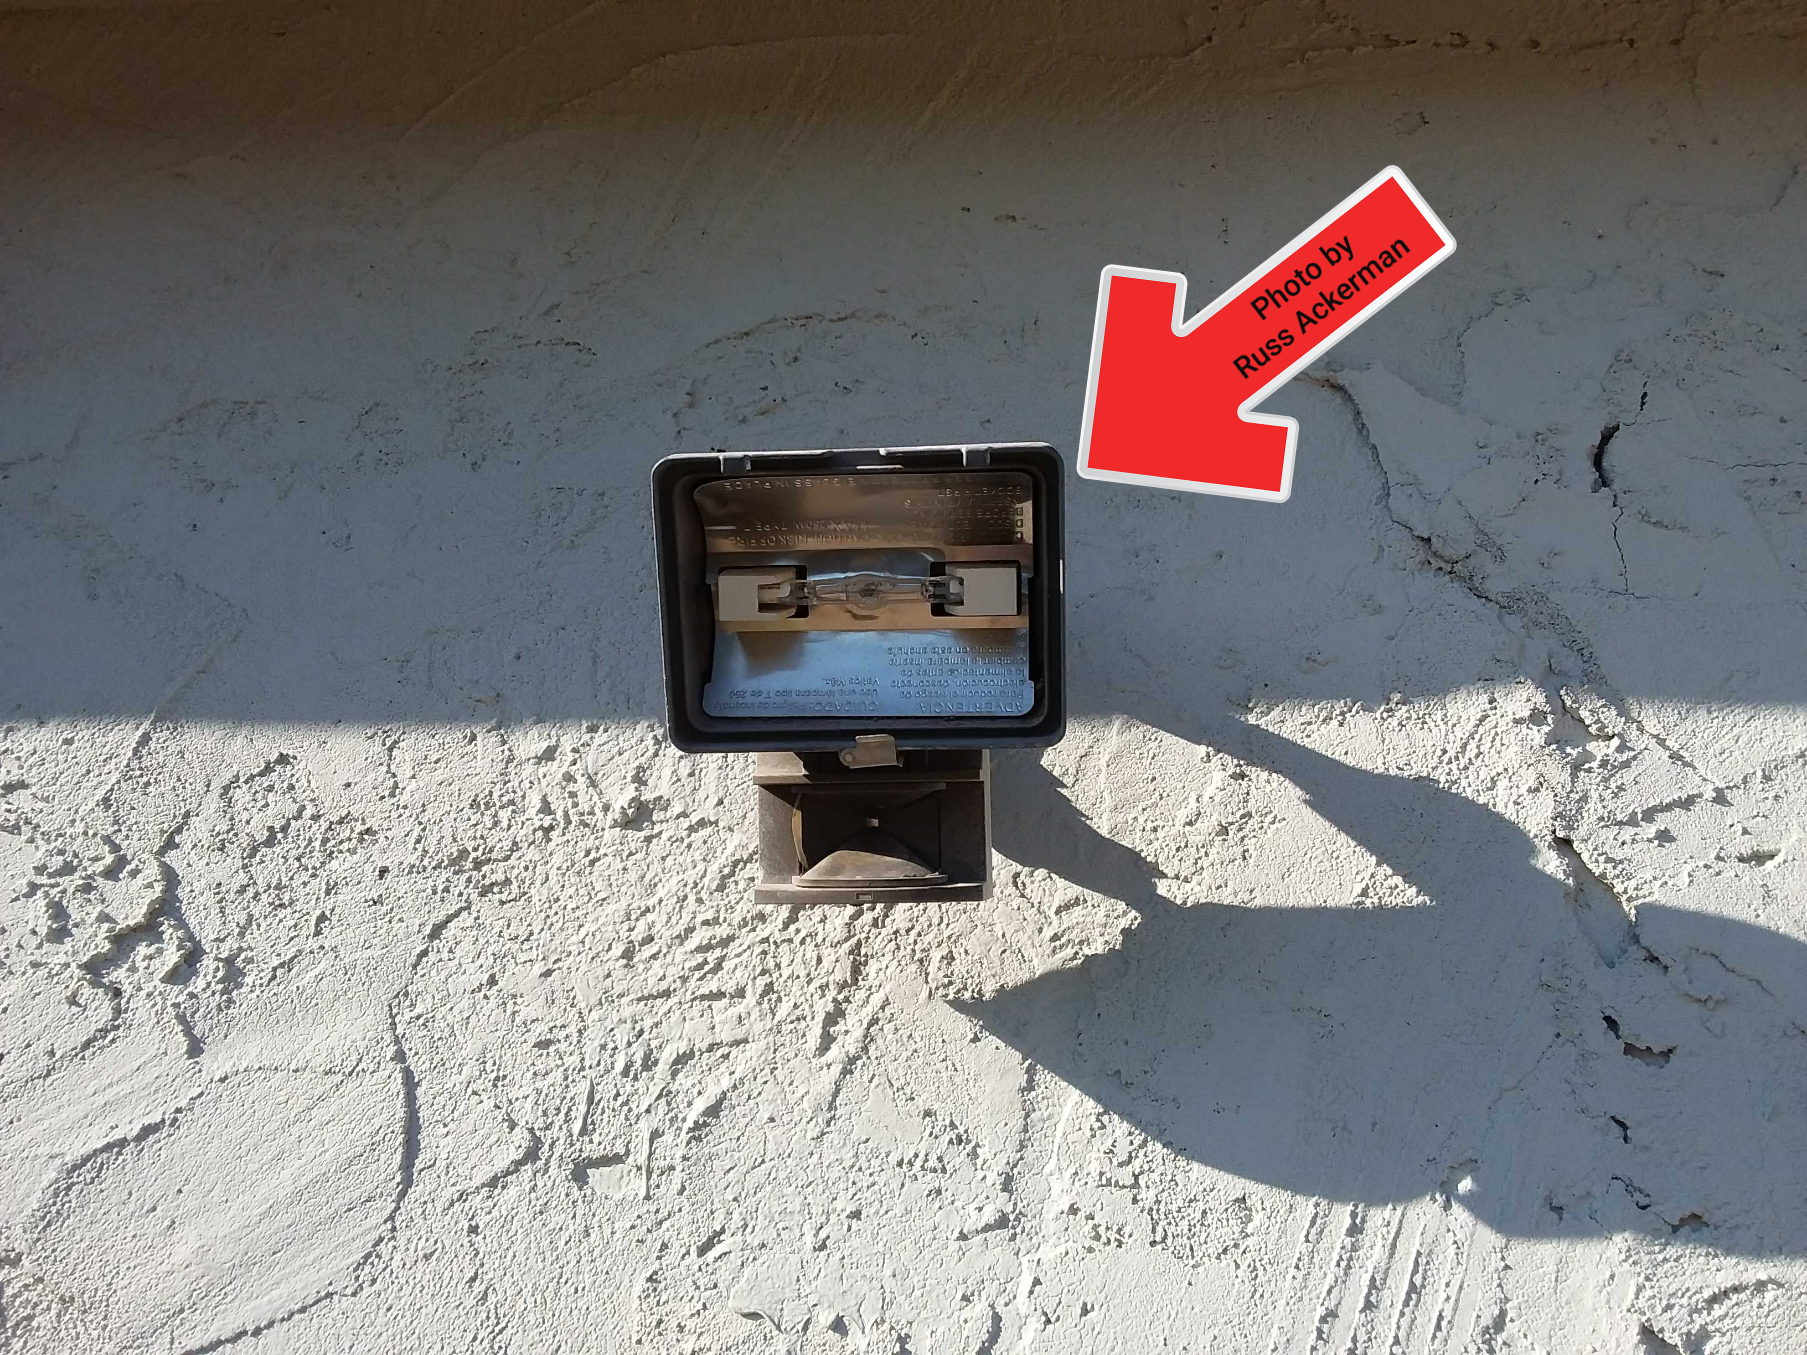 A missing glass cover to a halogen light could be a huge safety hazard as these lights heat up to well over 1000°F.